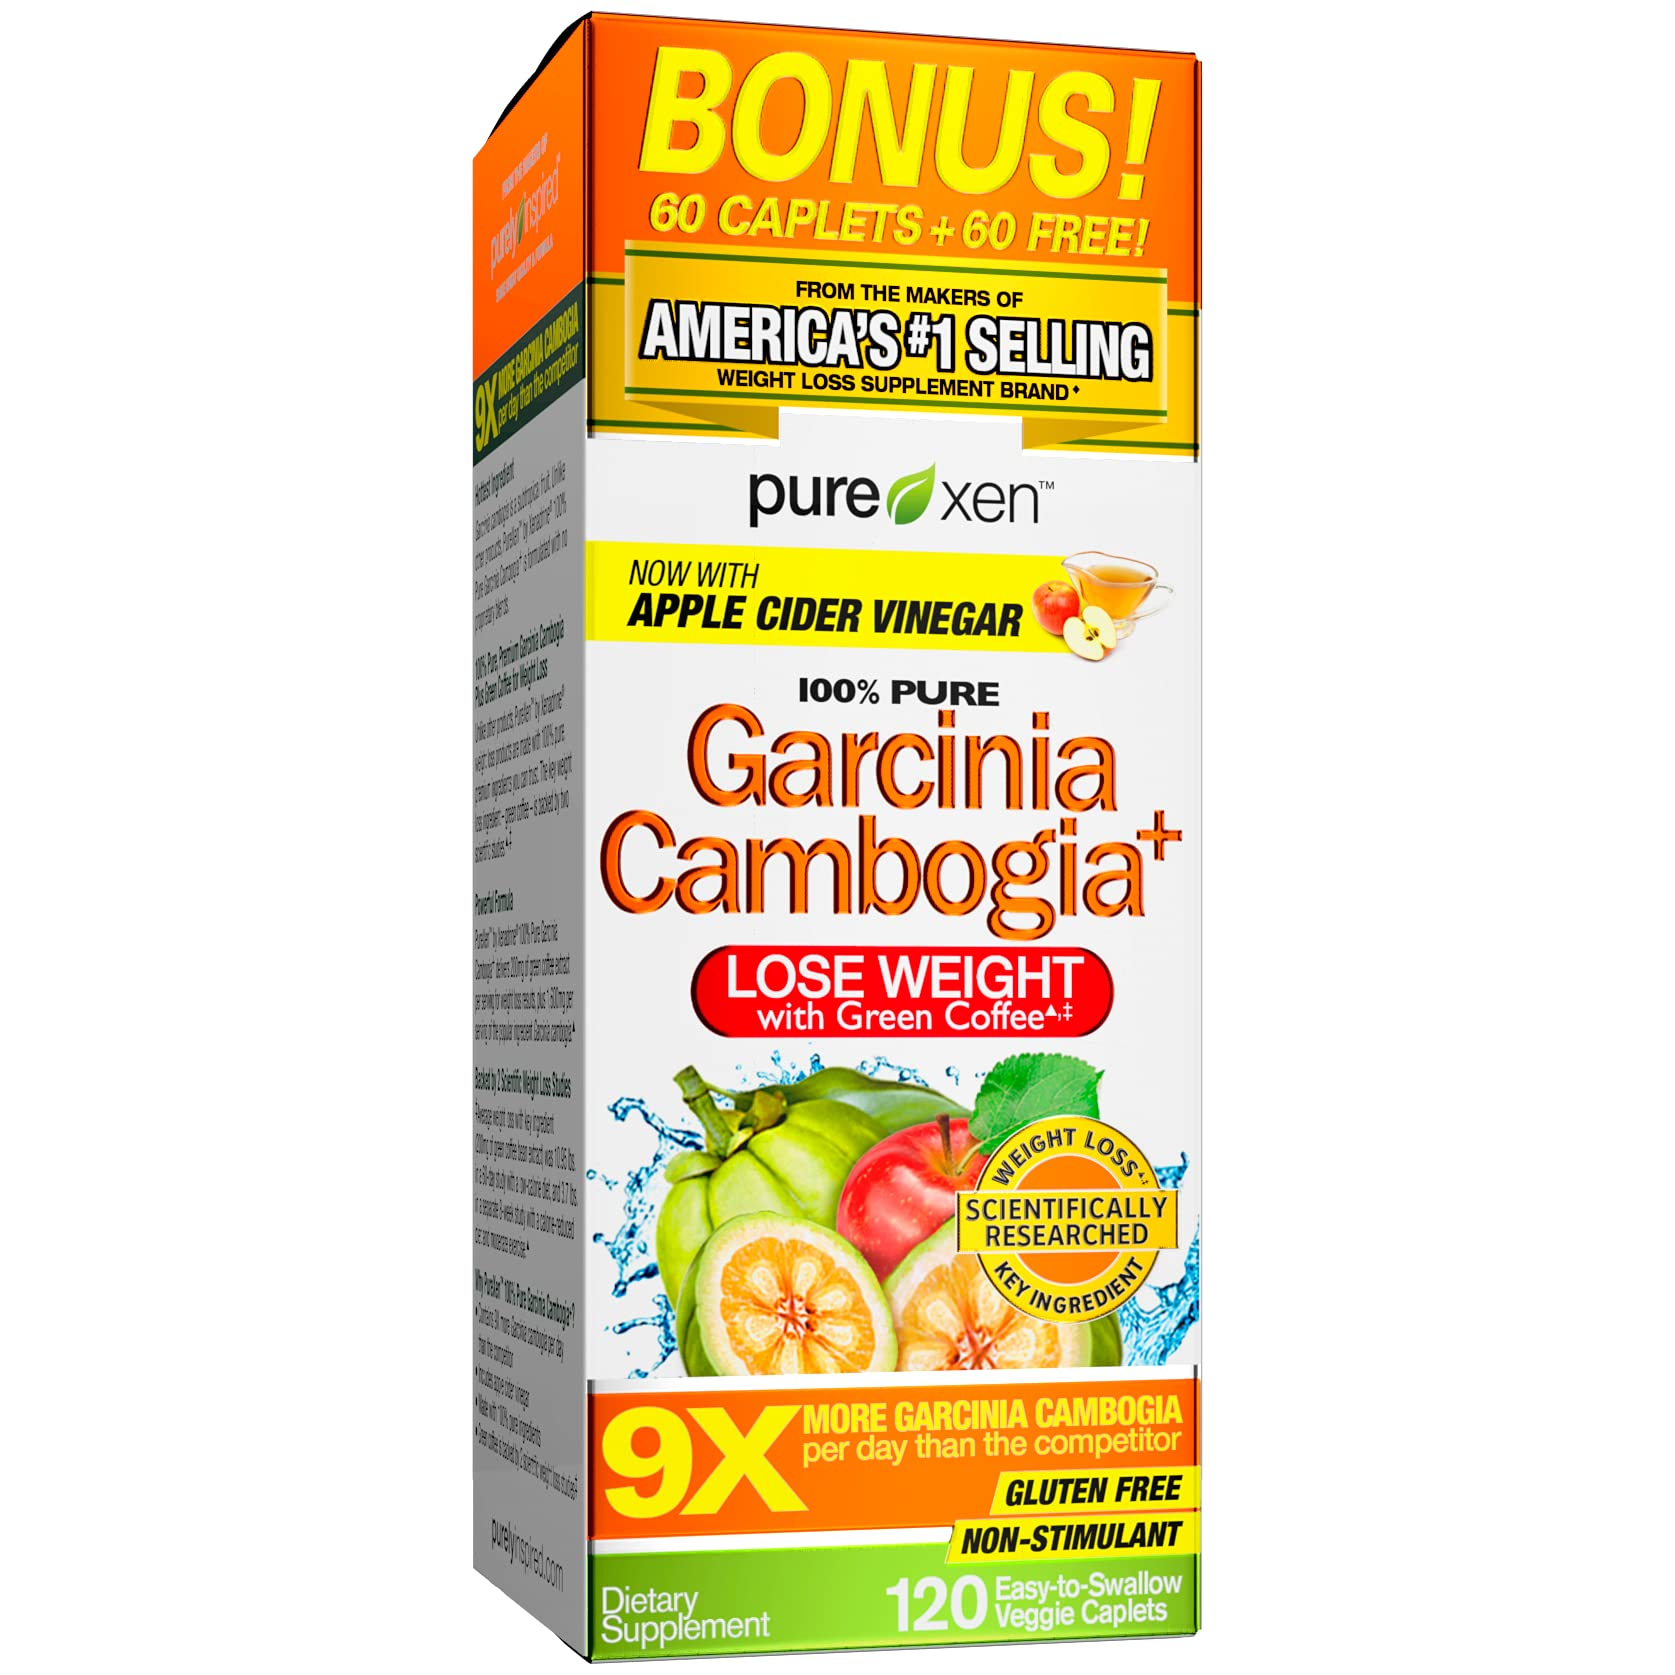 Garcinia Cambogia Weight Loss Pills for Women & Men Purely Inspired 100% Pure Garcinia Cambogia Featuring Apple Cider Vinegar Weight Loss Supplement Pills, 120 Pills (Packaging May Vary)